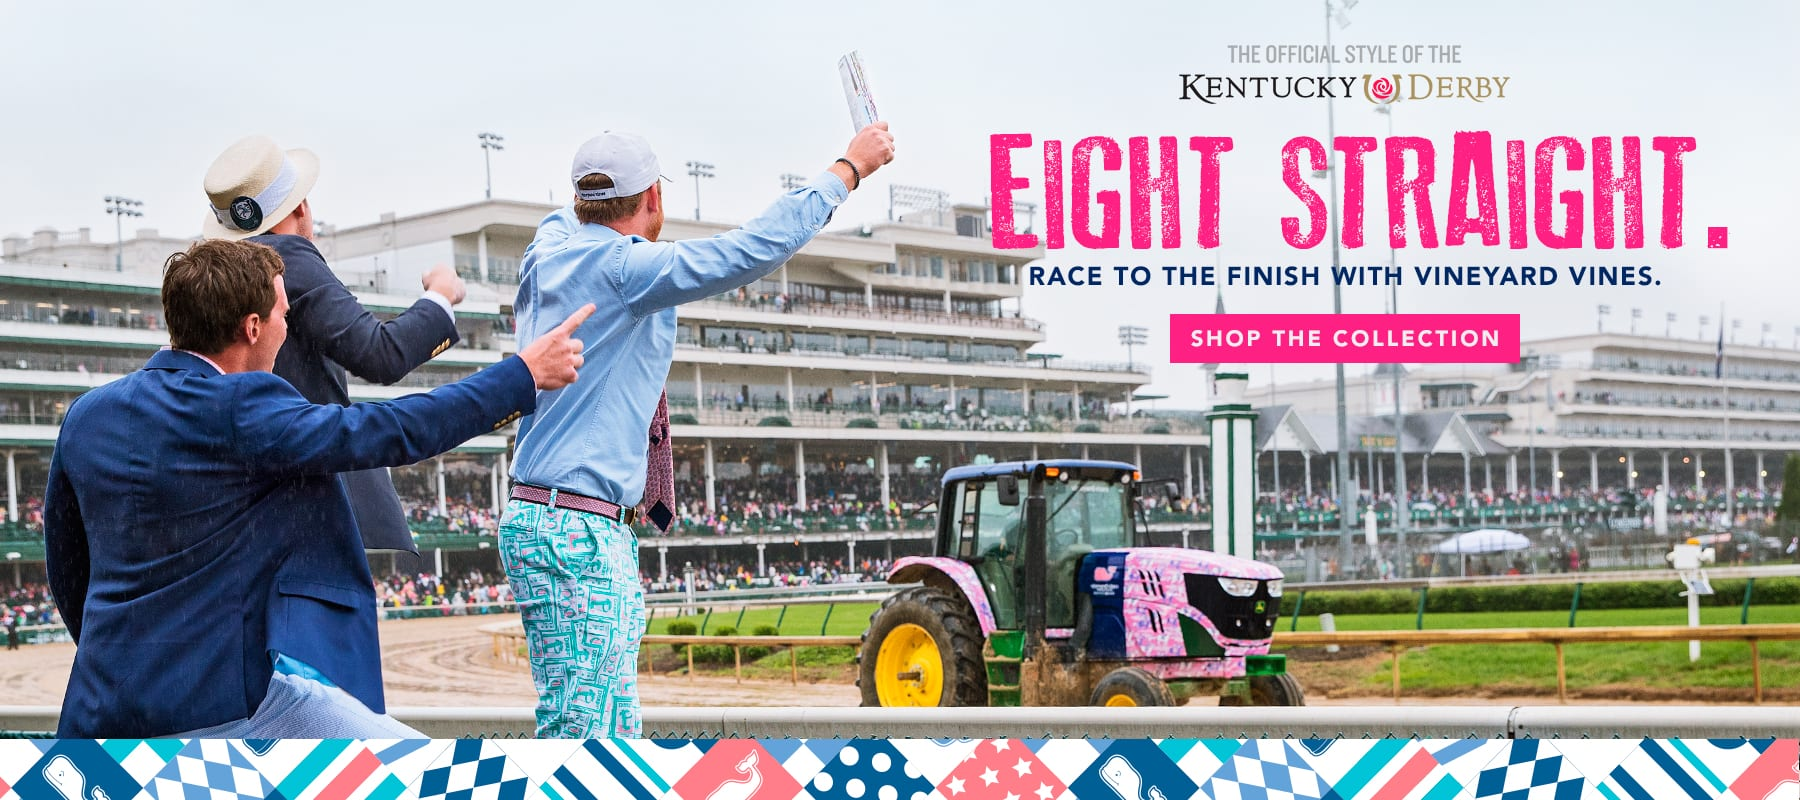 The Offical Style of the Kentucky Derby. Eight Straight. Race to the finish with vineyard vines. Shop the collection.